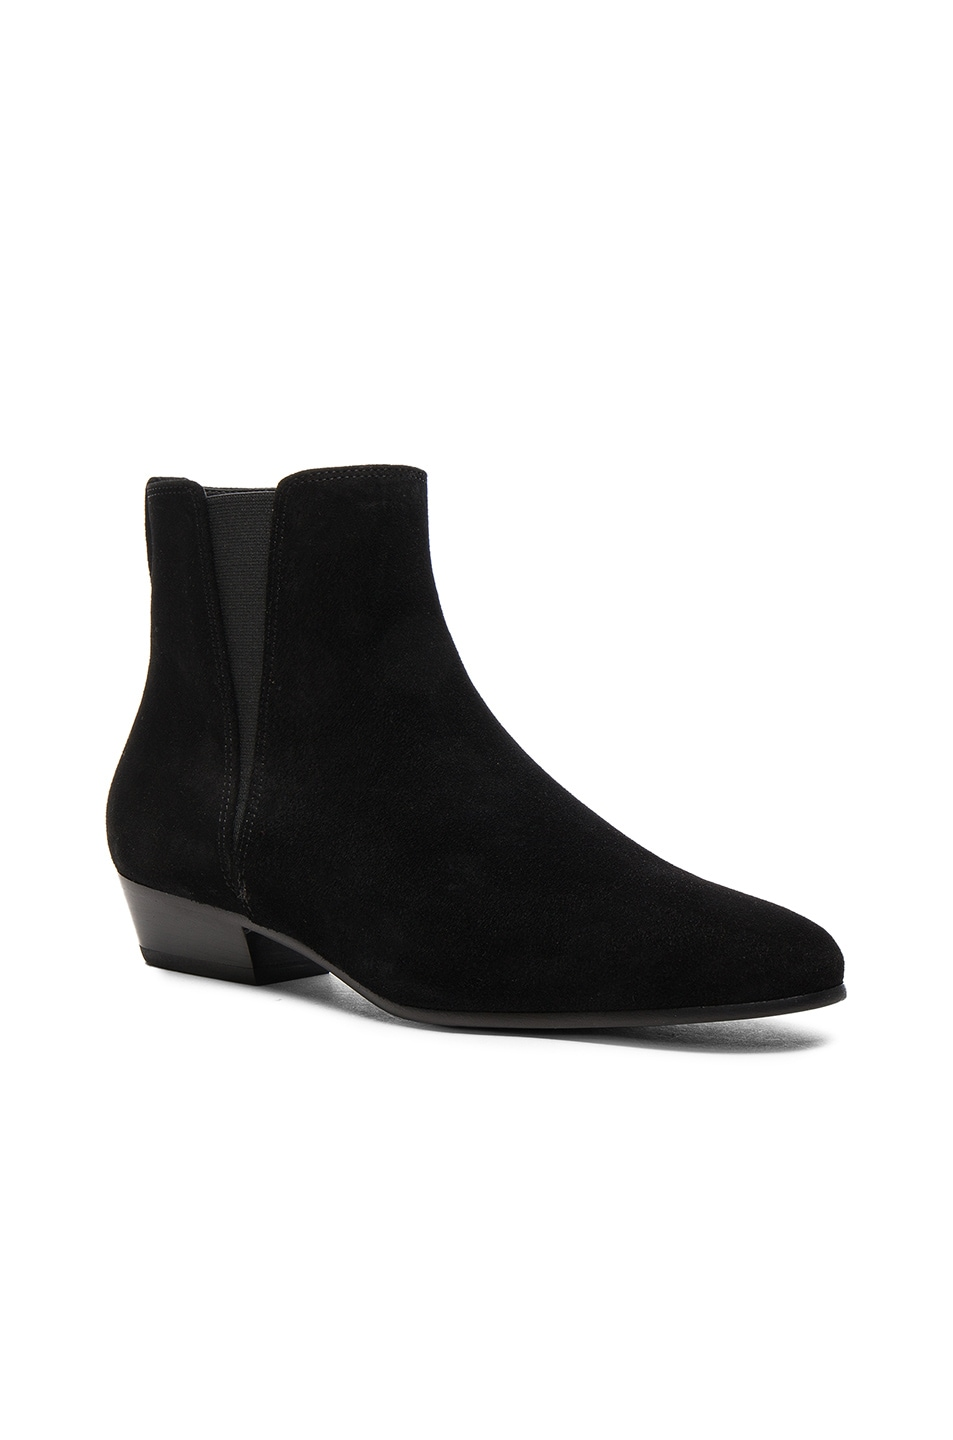 Image 2 of Isabel Marant Etoile Patsha Velvet Booties in Black